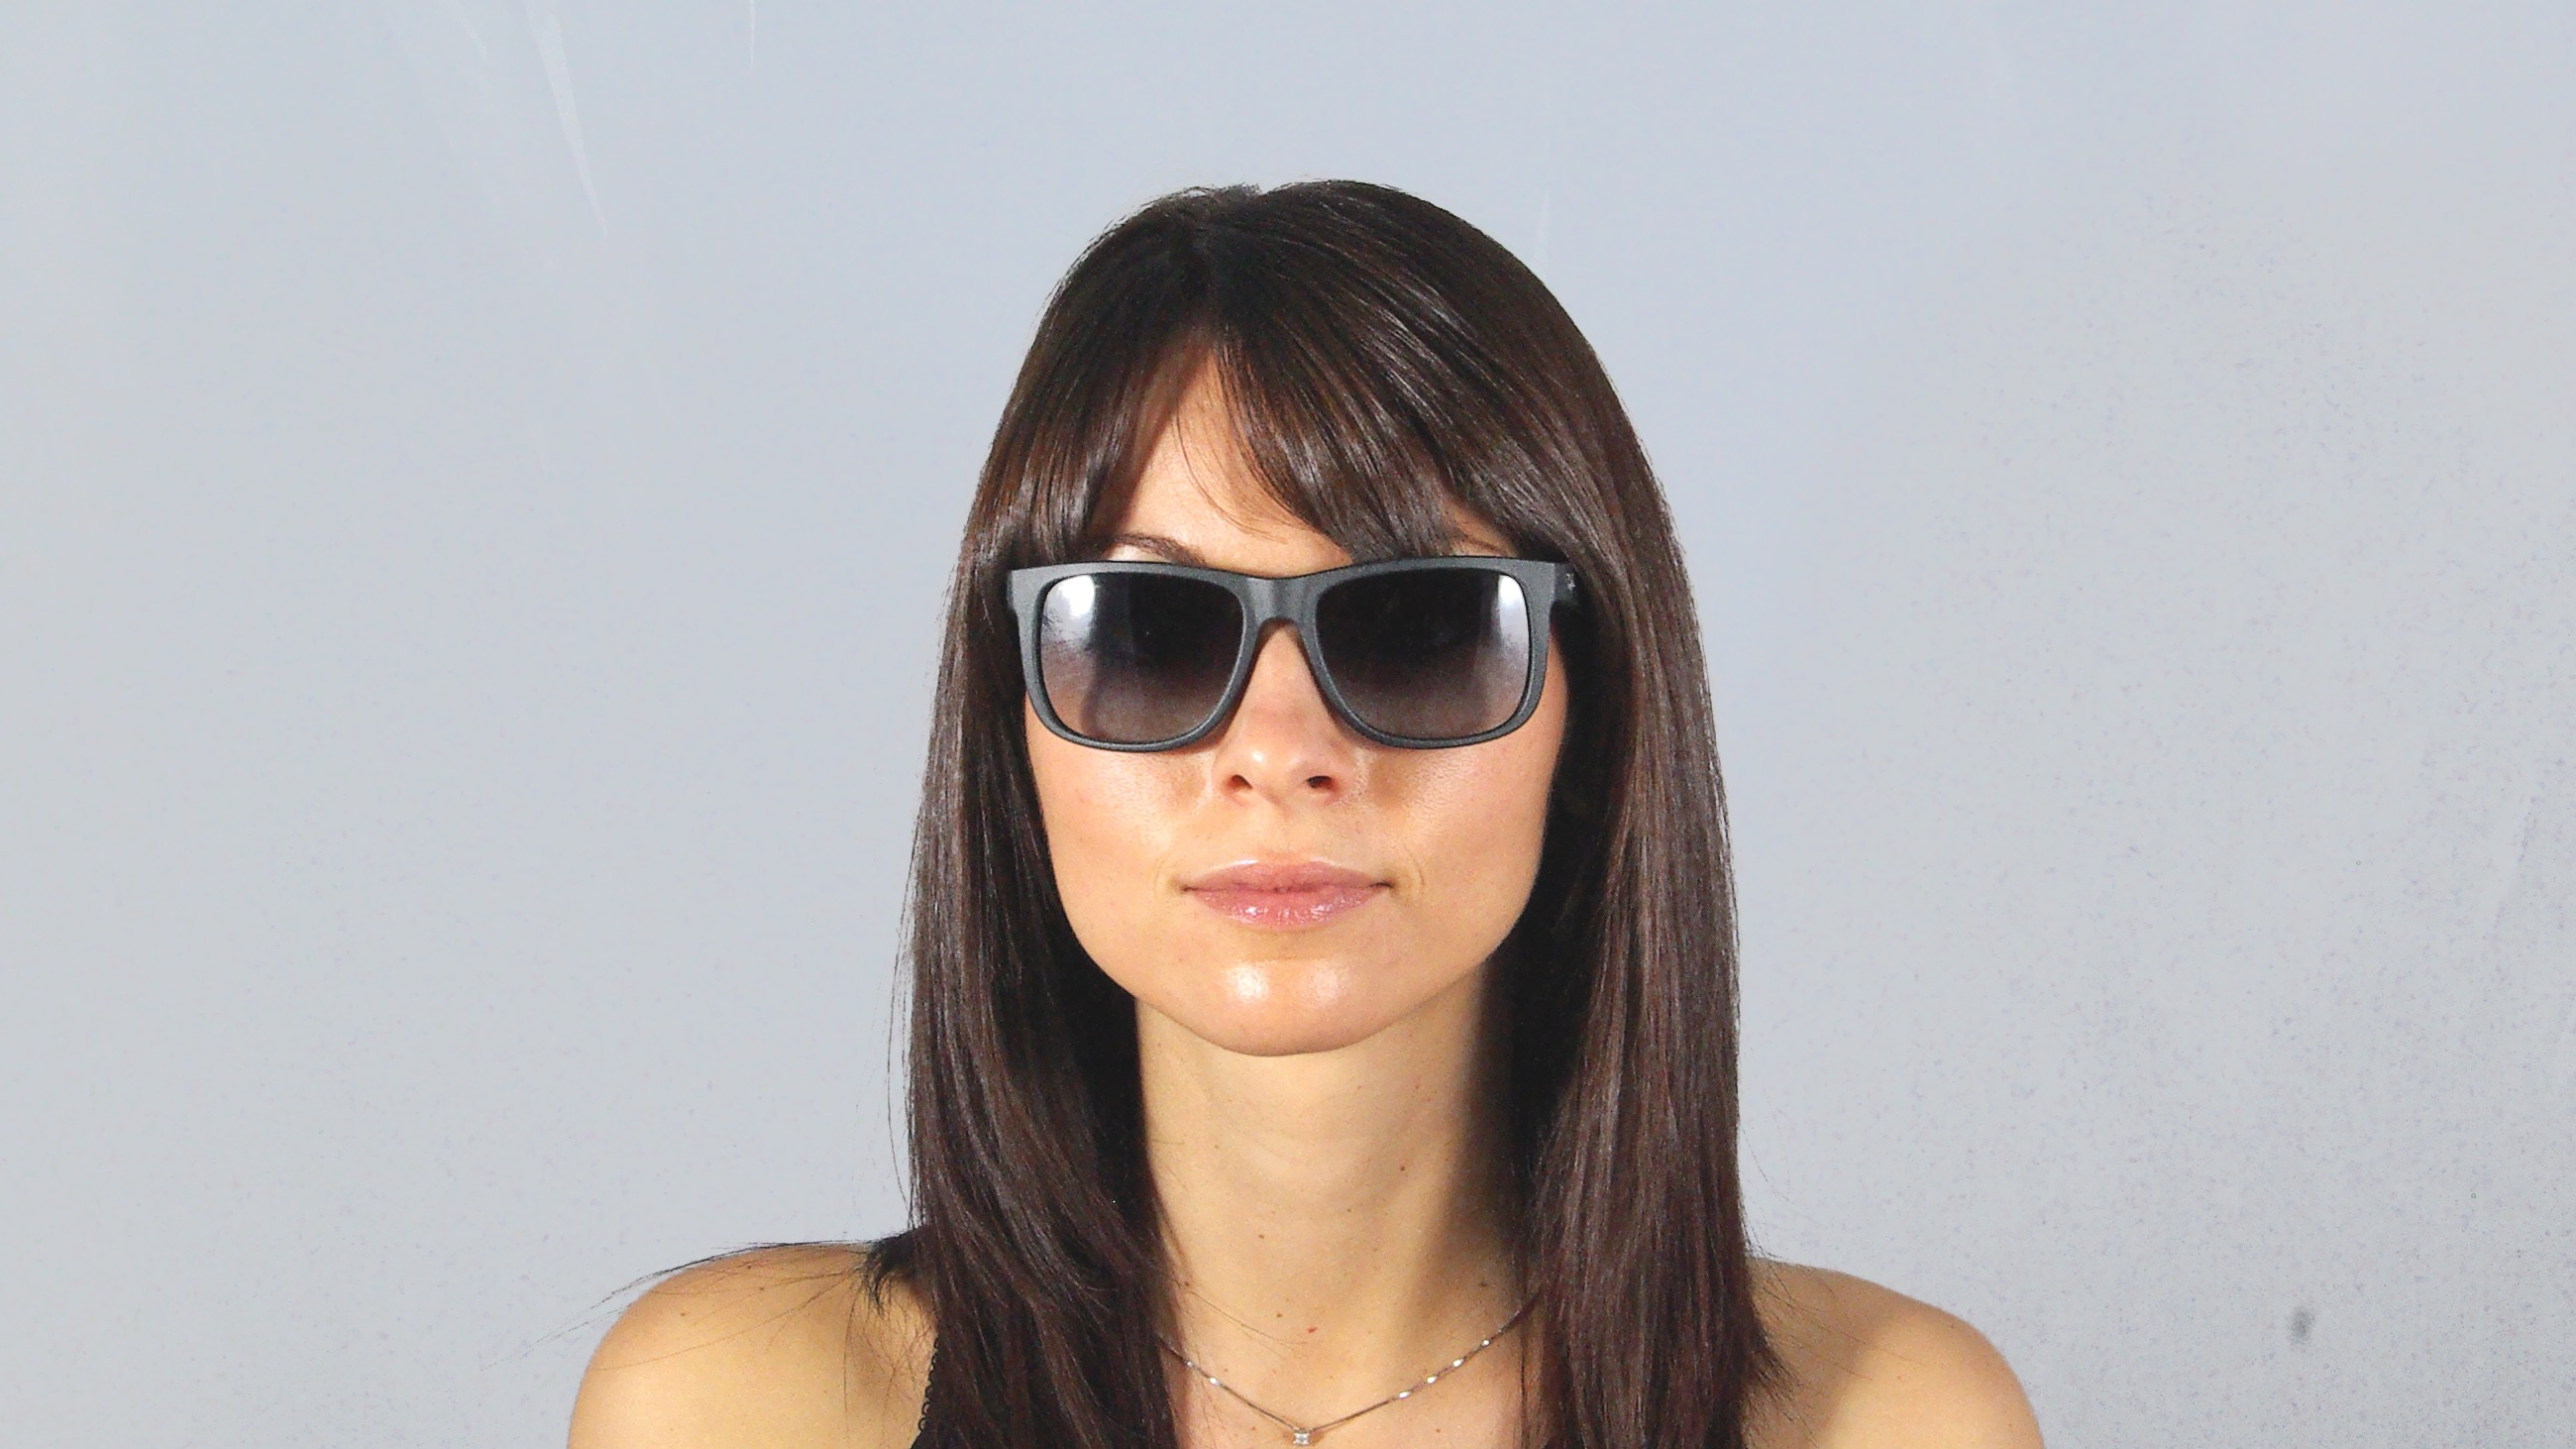 31304327fb6 ... promo code for sunglasses ray ban justin black rb4165 601 8g 54 16  large gradient bbadd